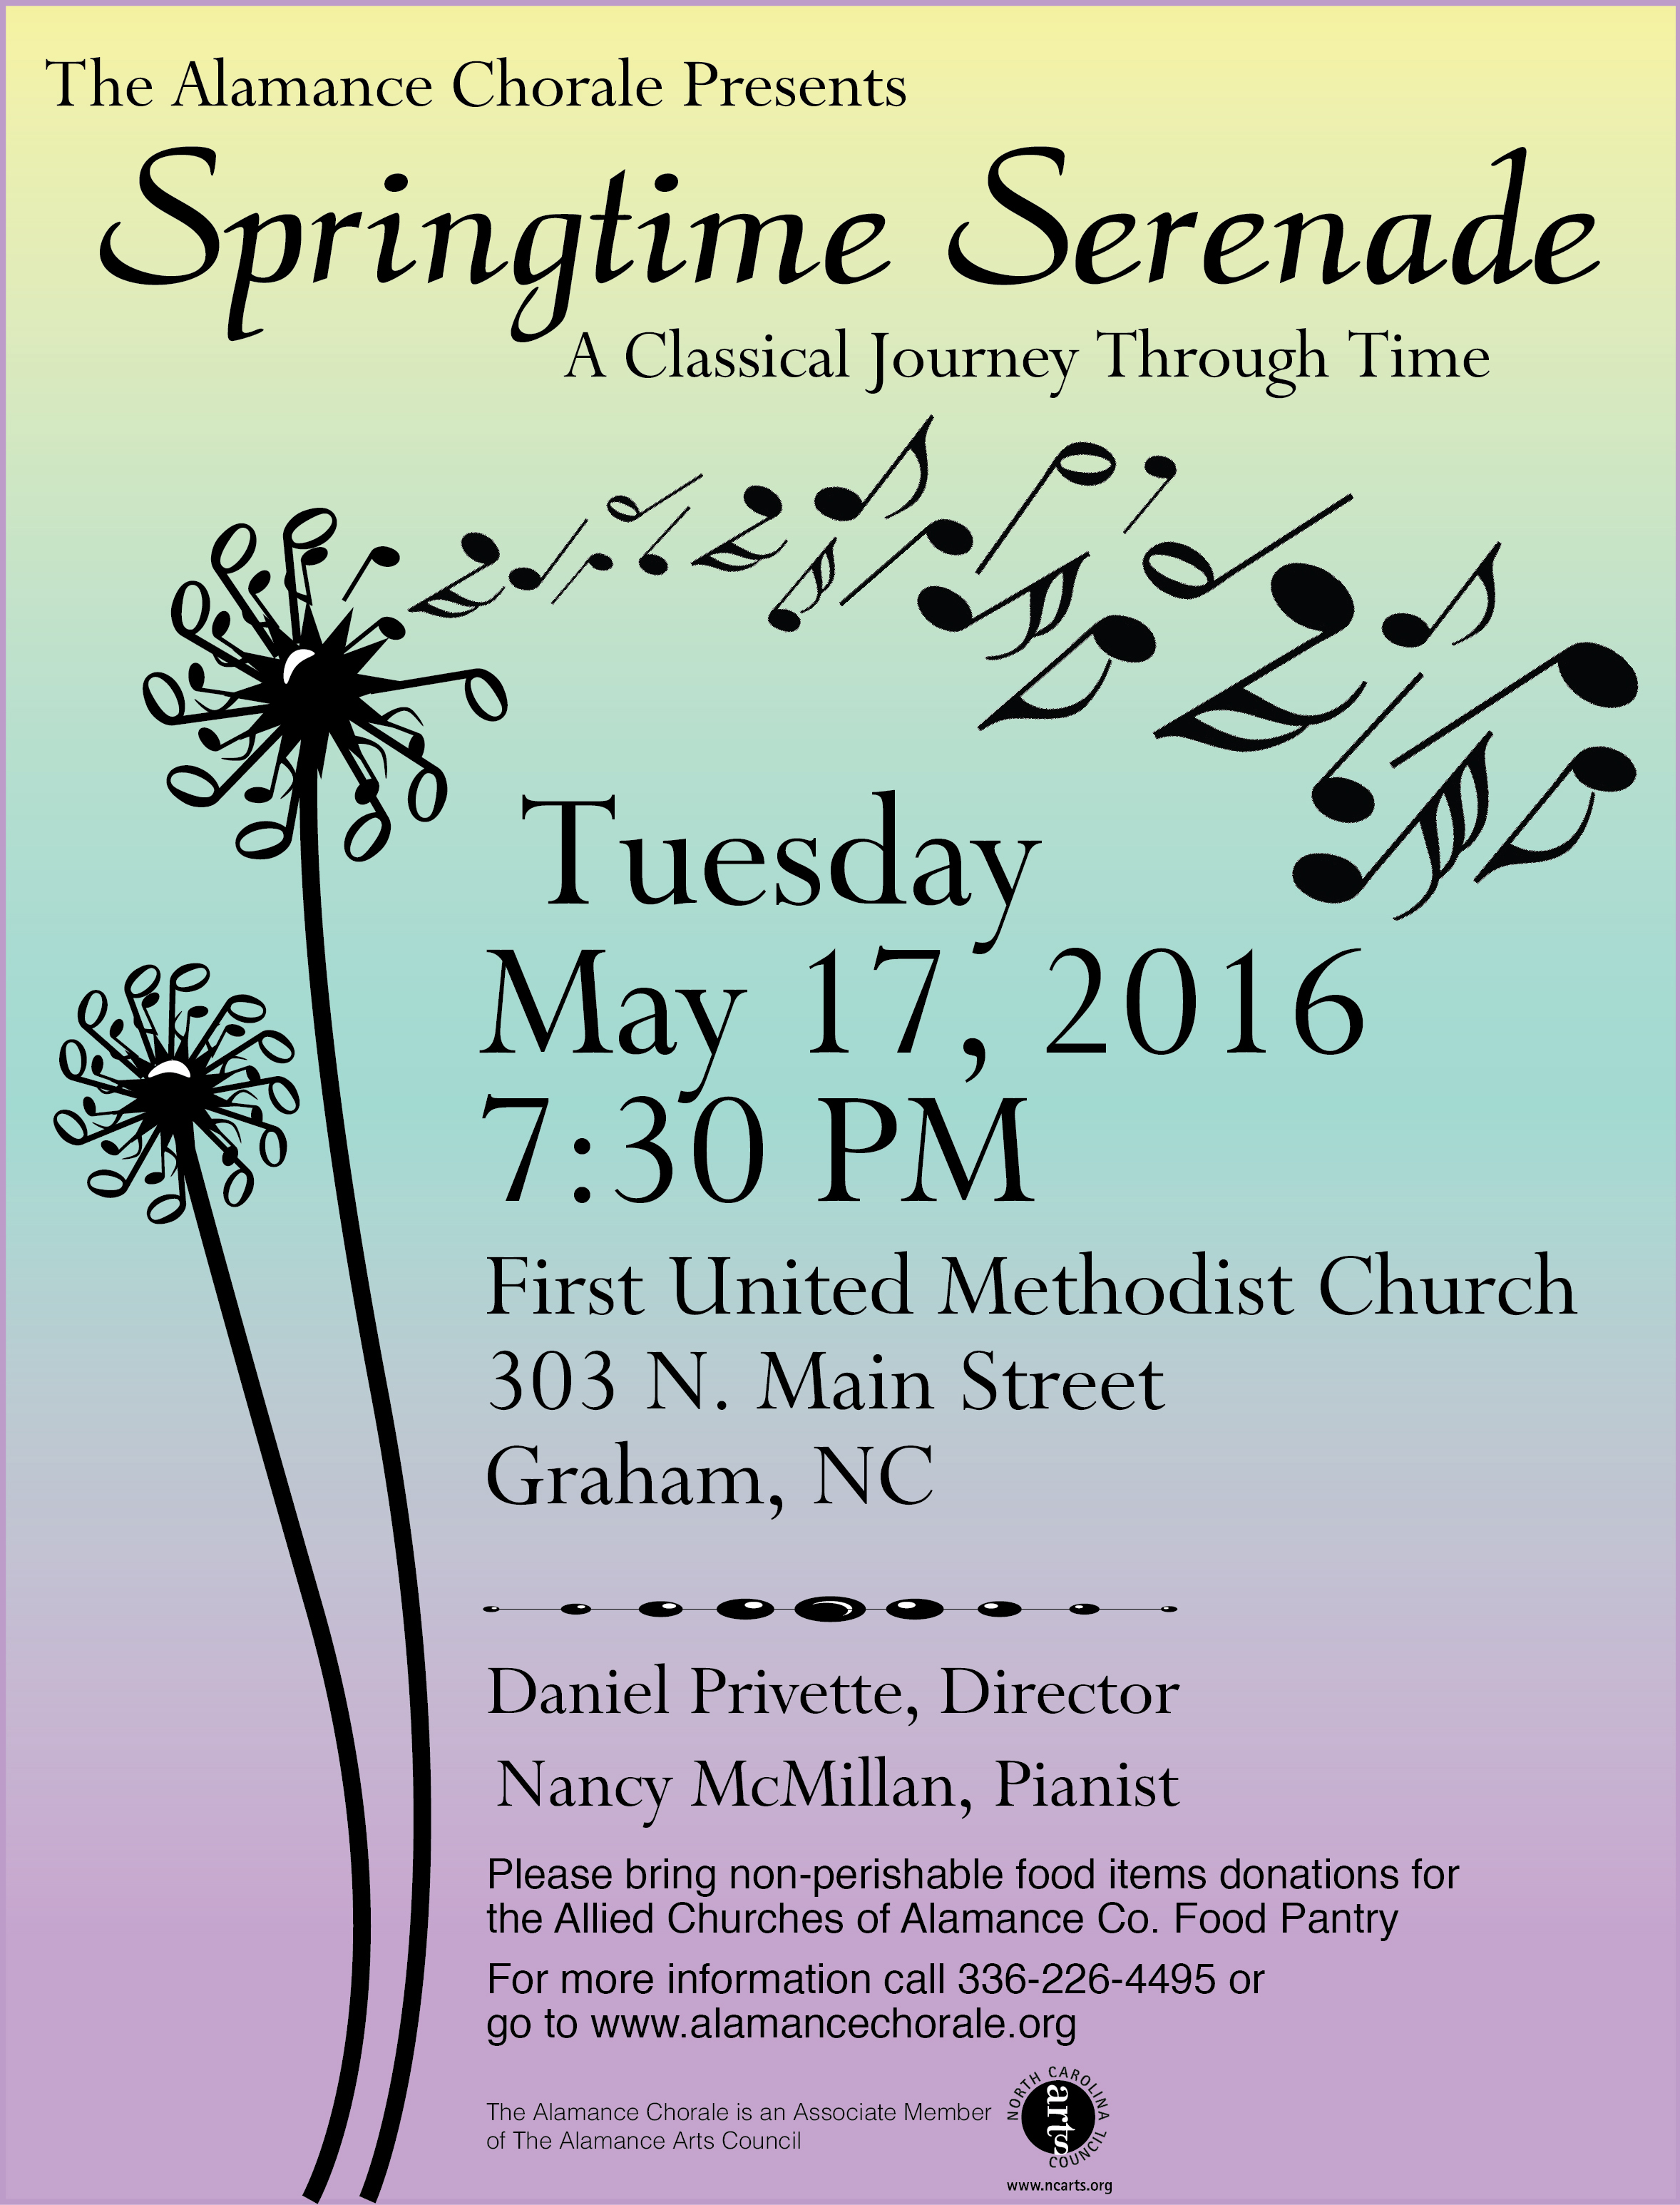 The Alamance Chorale Presents: Springtime Serenade – A Classical Journey Through Time...Tuesday, May 17th at 7:30 pm, First United Methodist Church, 303 North Main St., Graham, NC